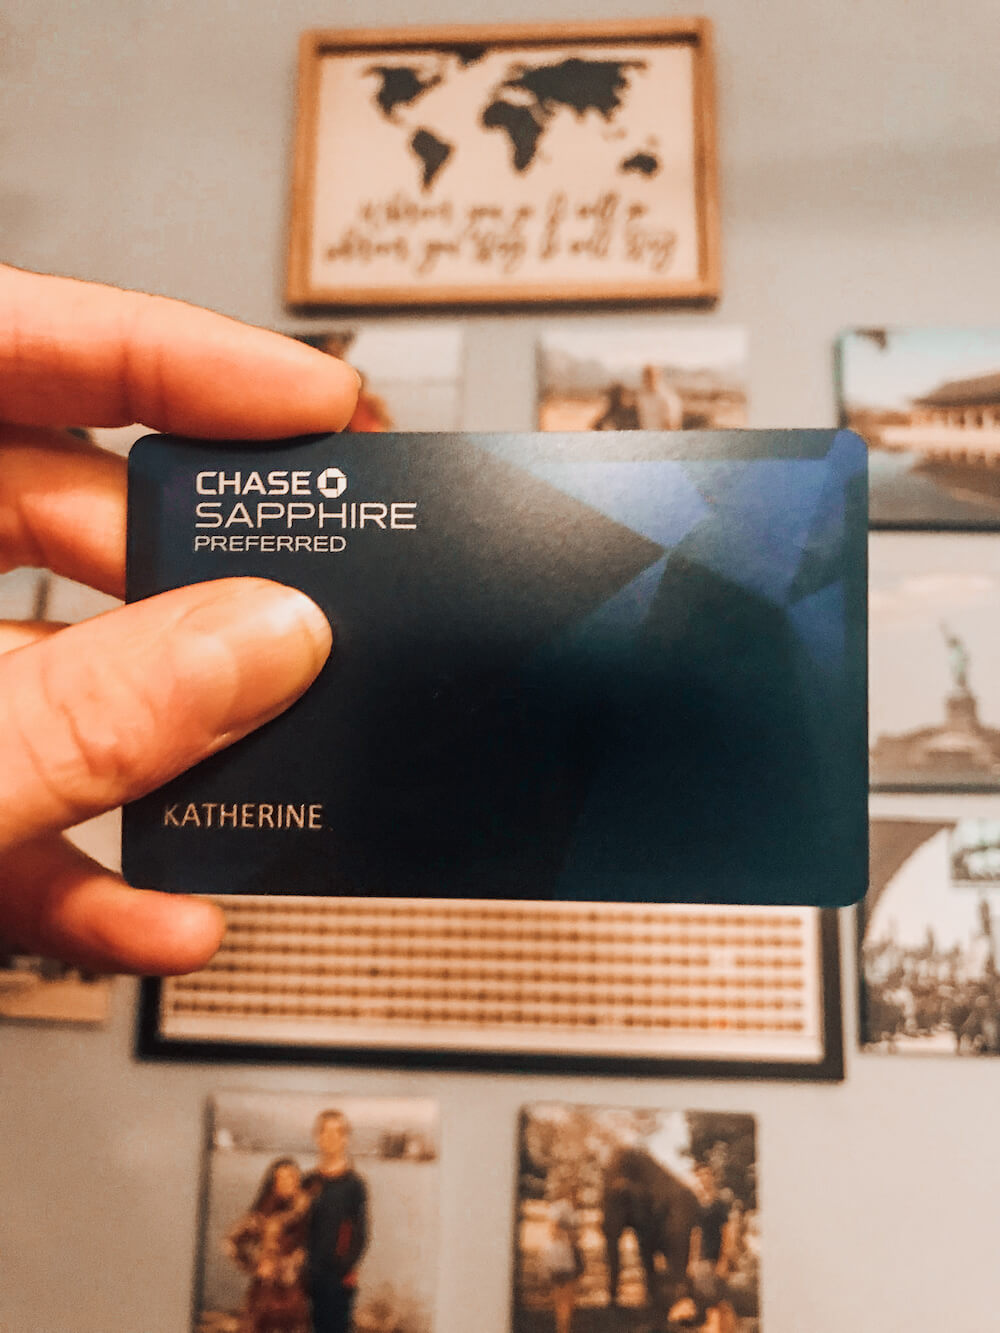 Chase Sapphire Preferred Card- Chase 5/24 Rule